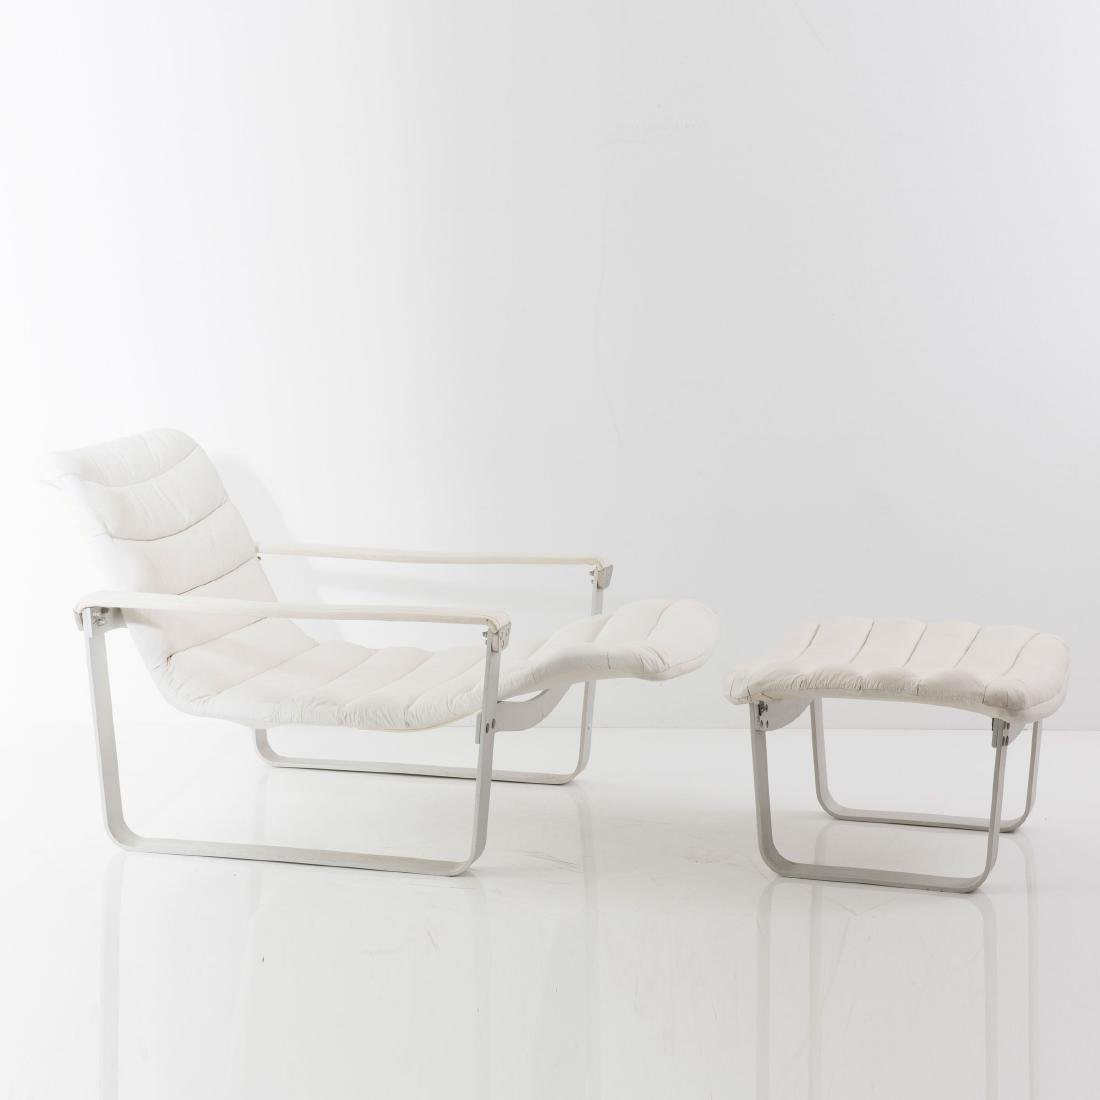 'Metal - pullka' easy chair with ottoman, 1968 - 6